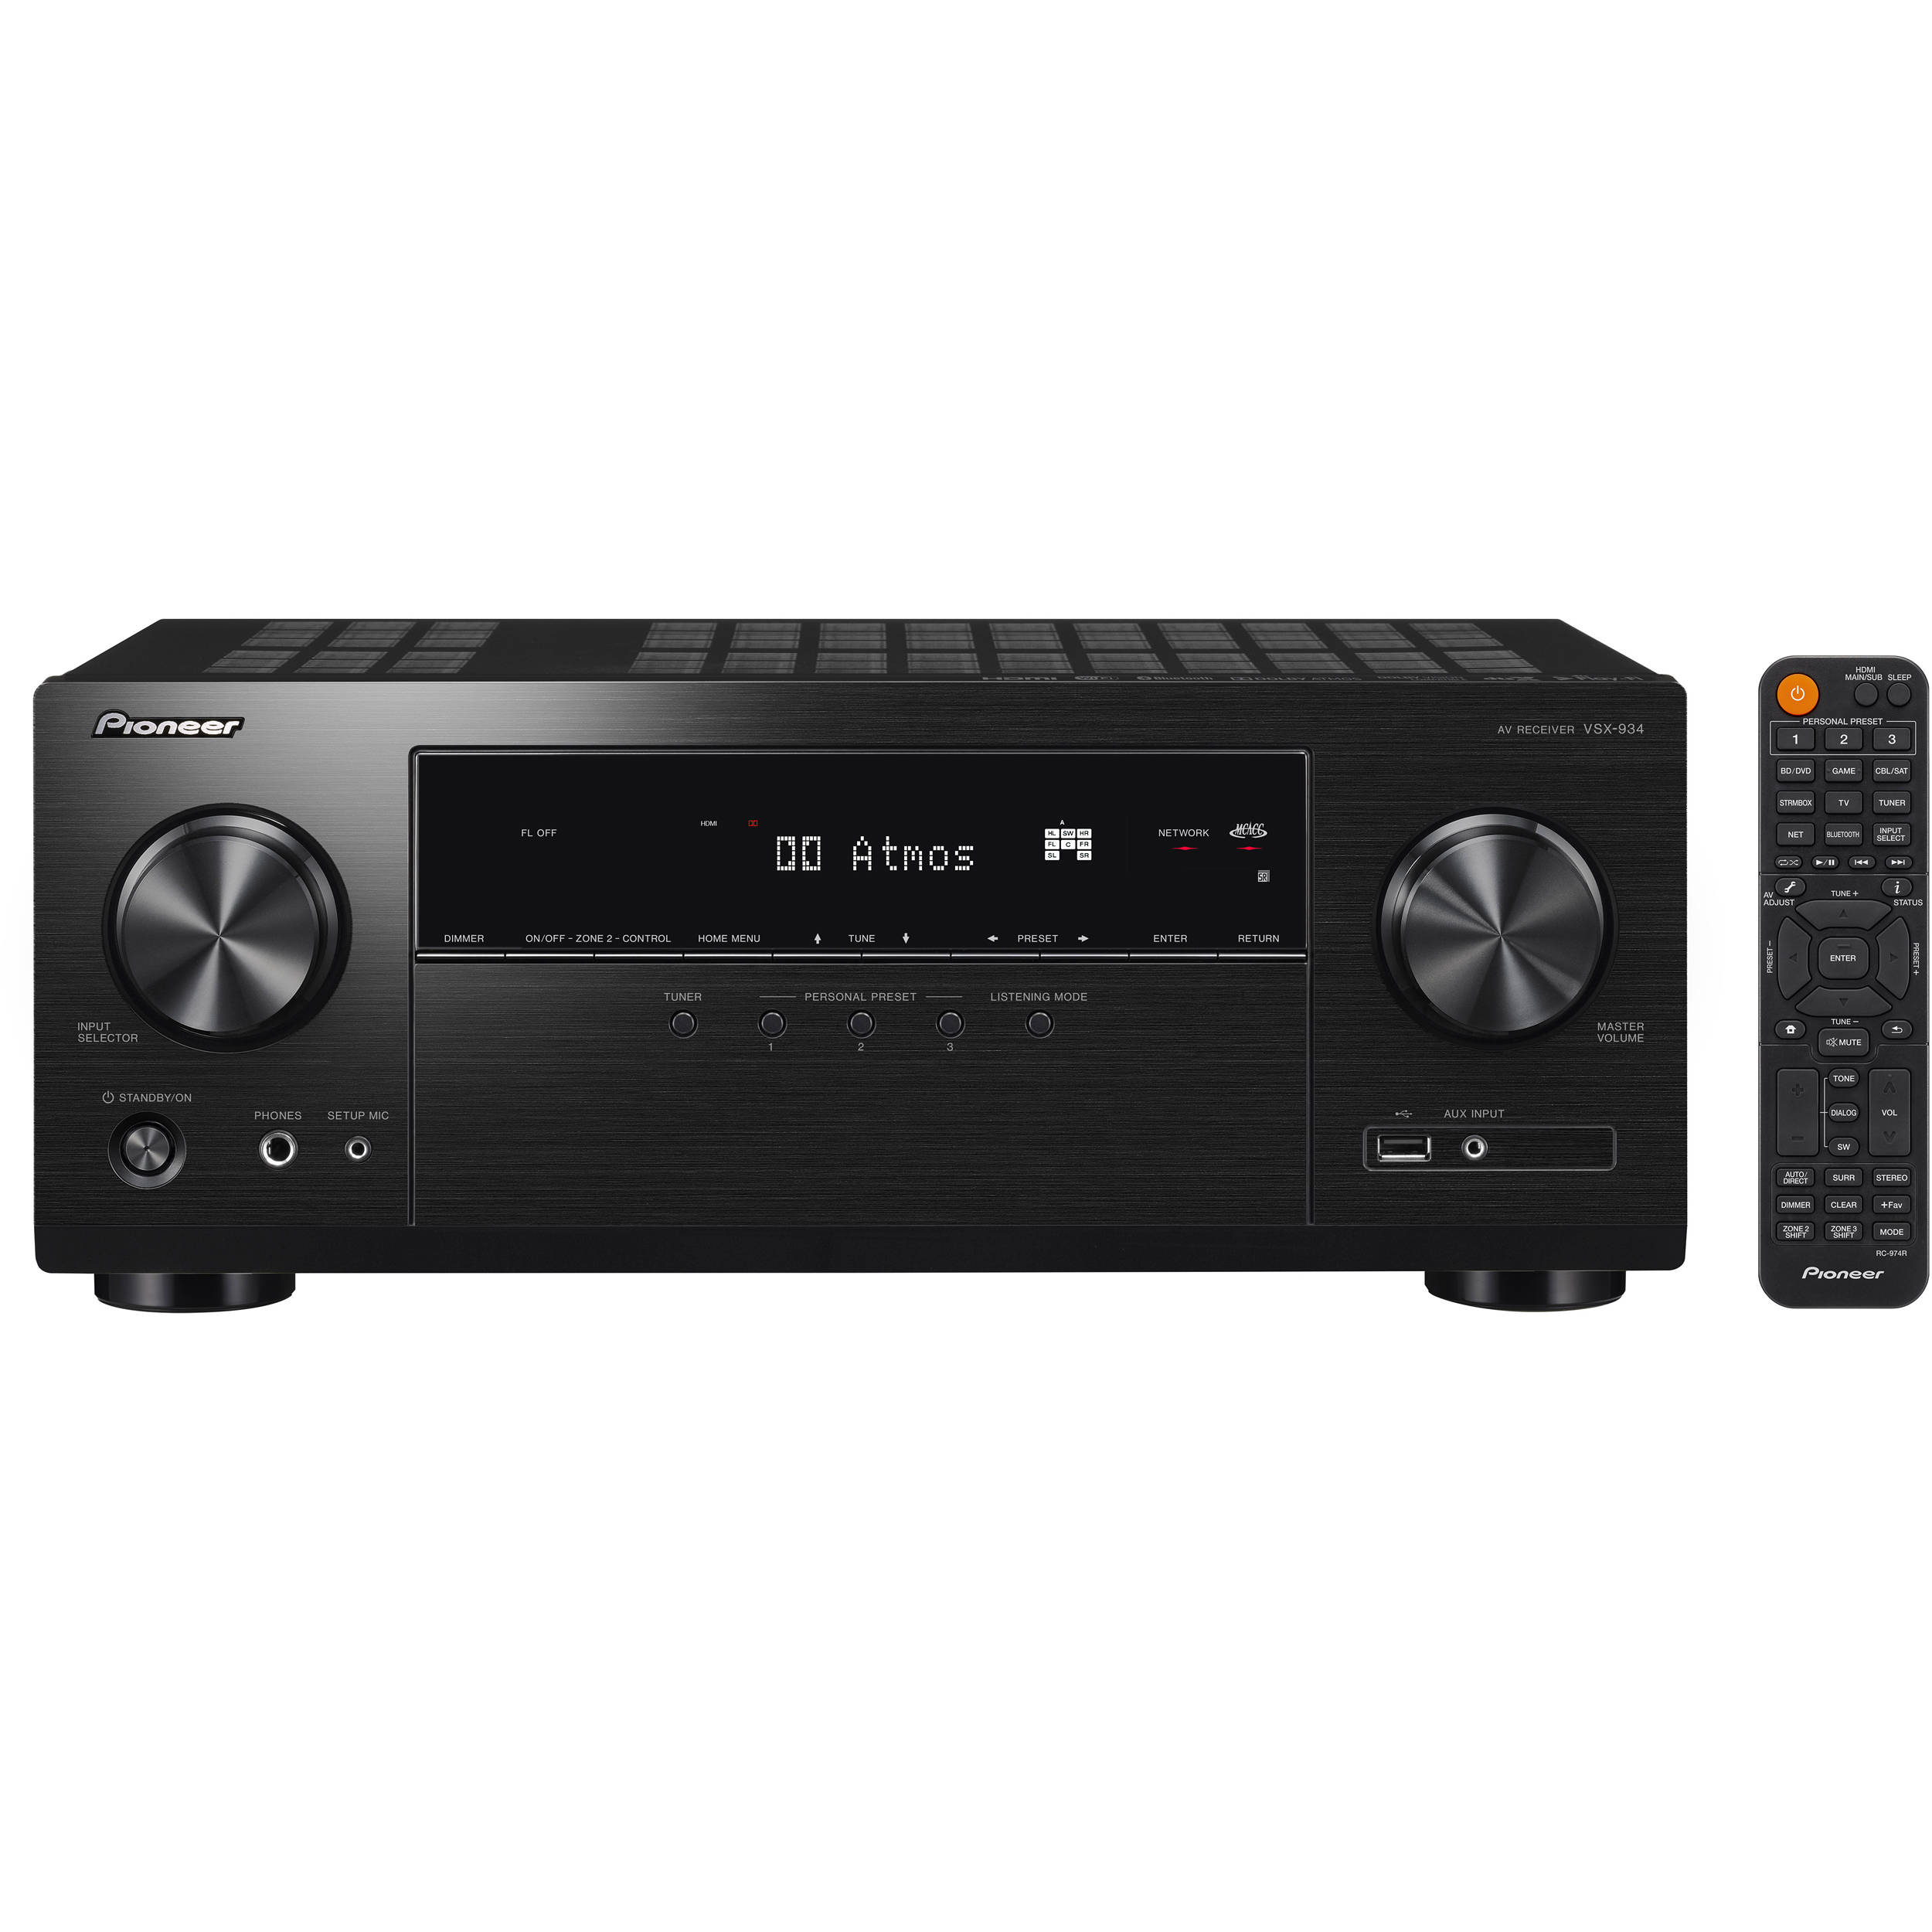 Receiver VSX-934 A/V 7.2 Dolby Atmos 4K HDR - PIONEER